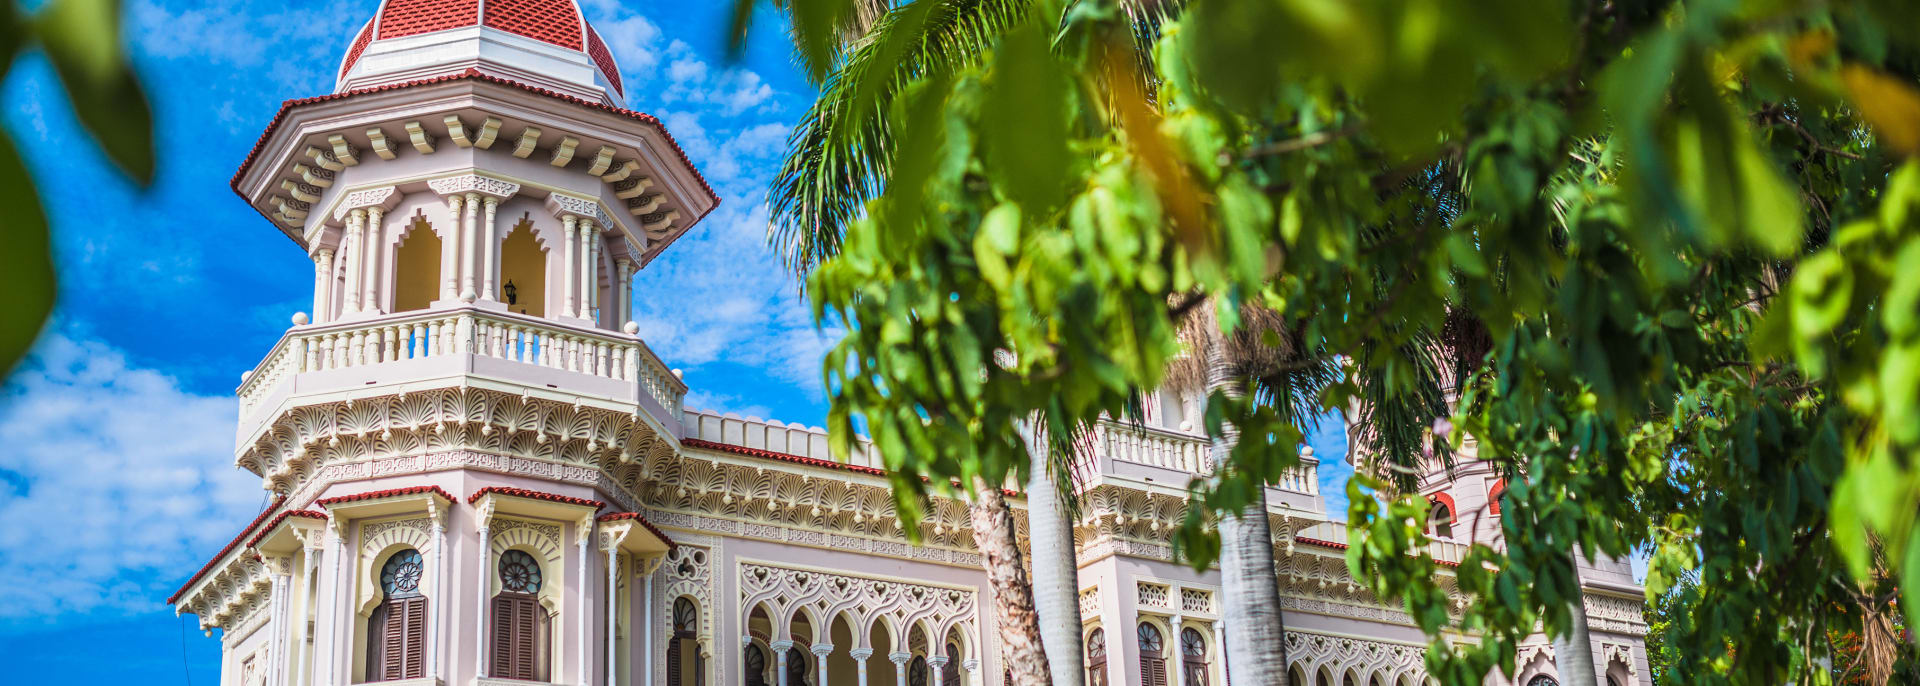 Historical Cienfuegos Pearl of the South Cuba